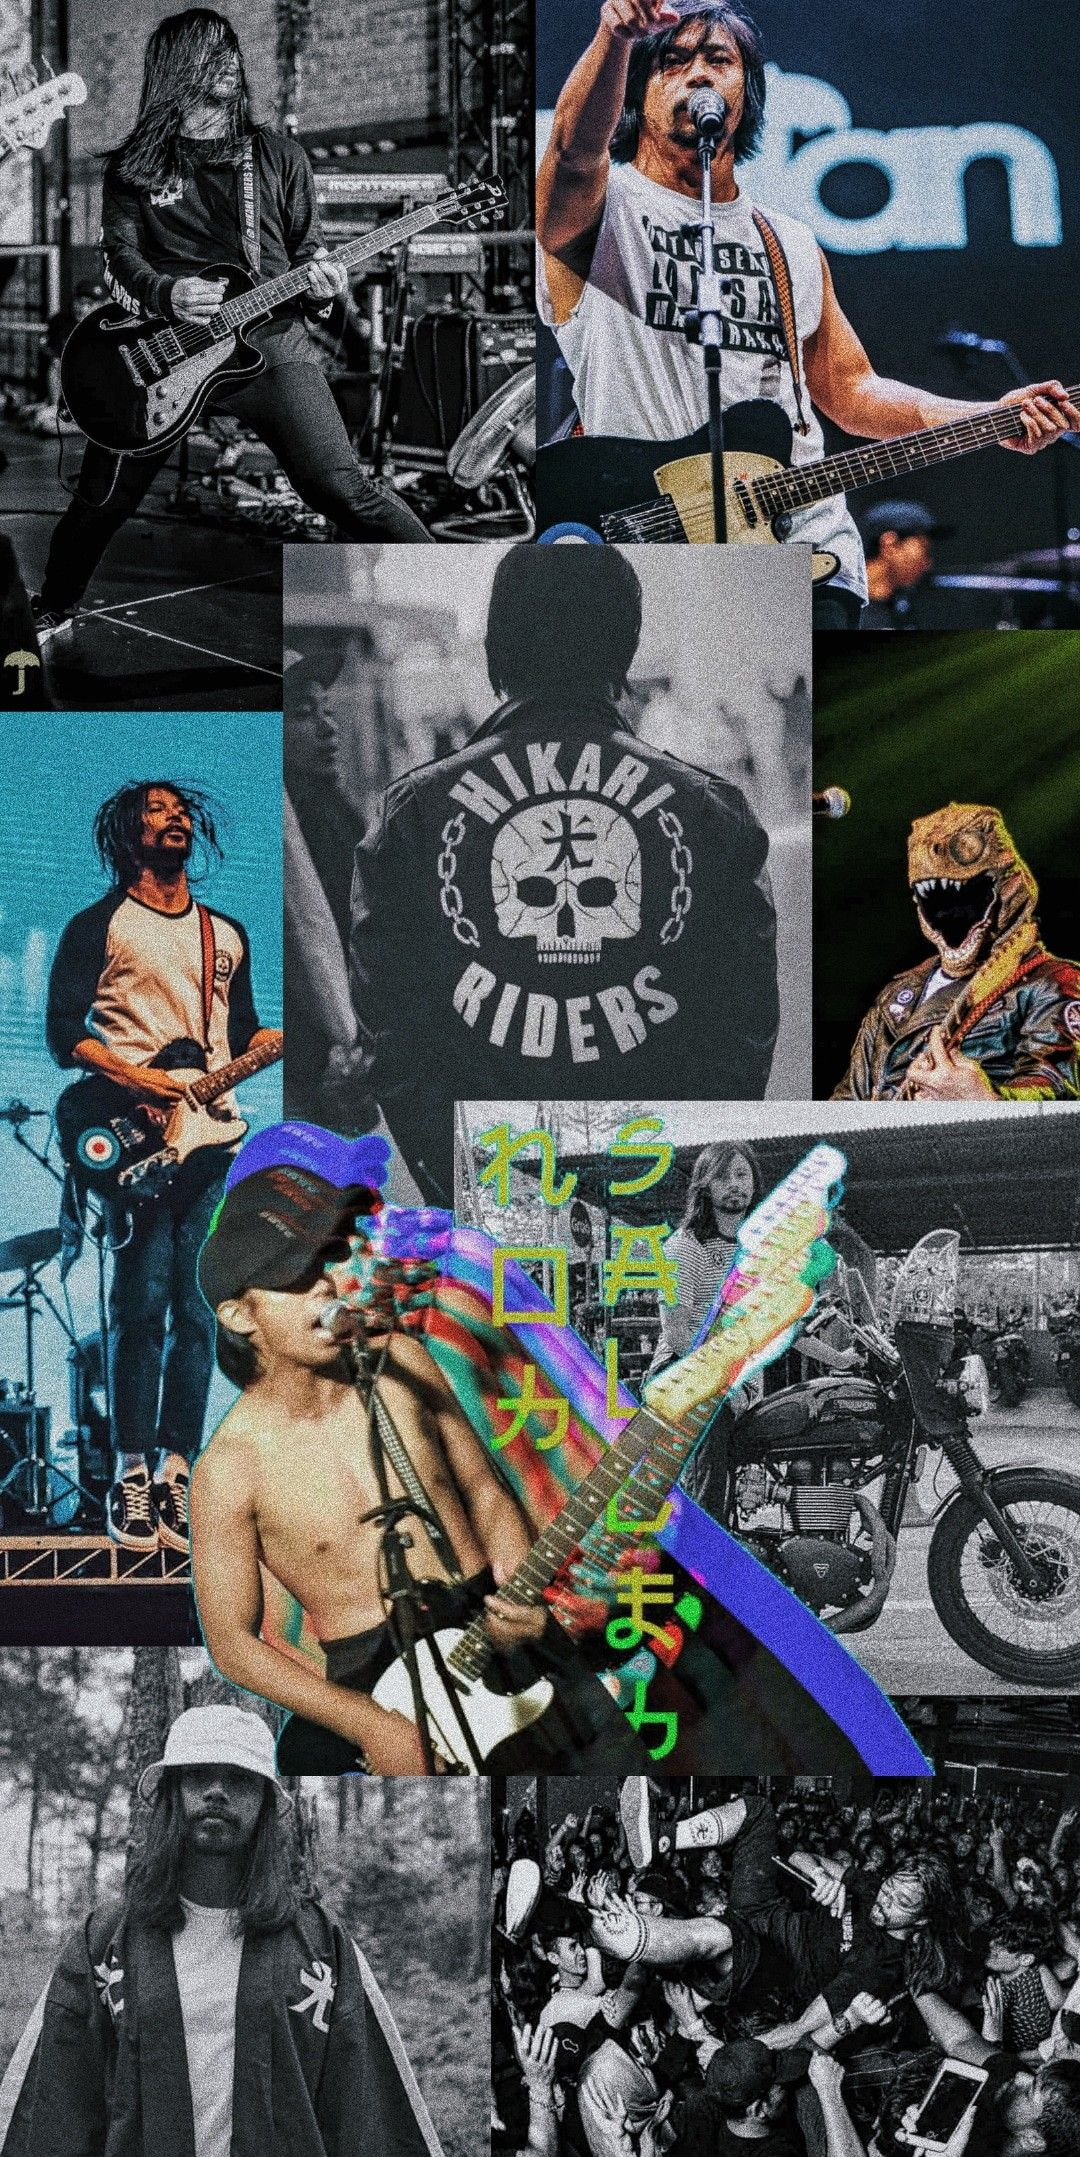 Noh Salleh Band Wallpapers Huawei Wallpapers Gig Posters